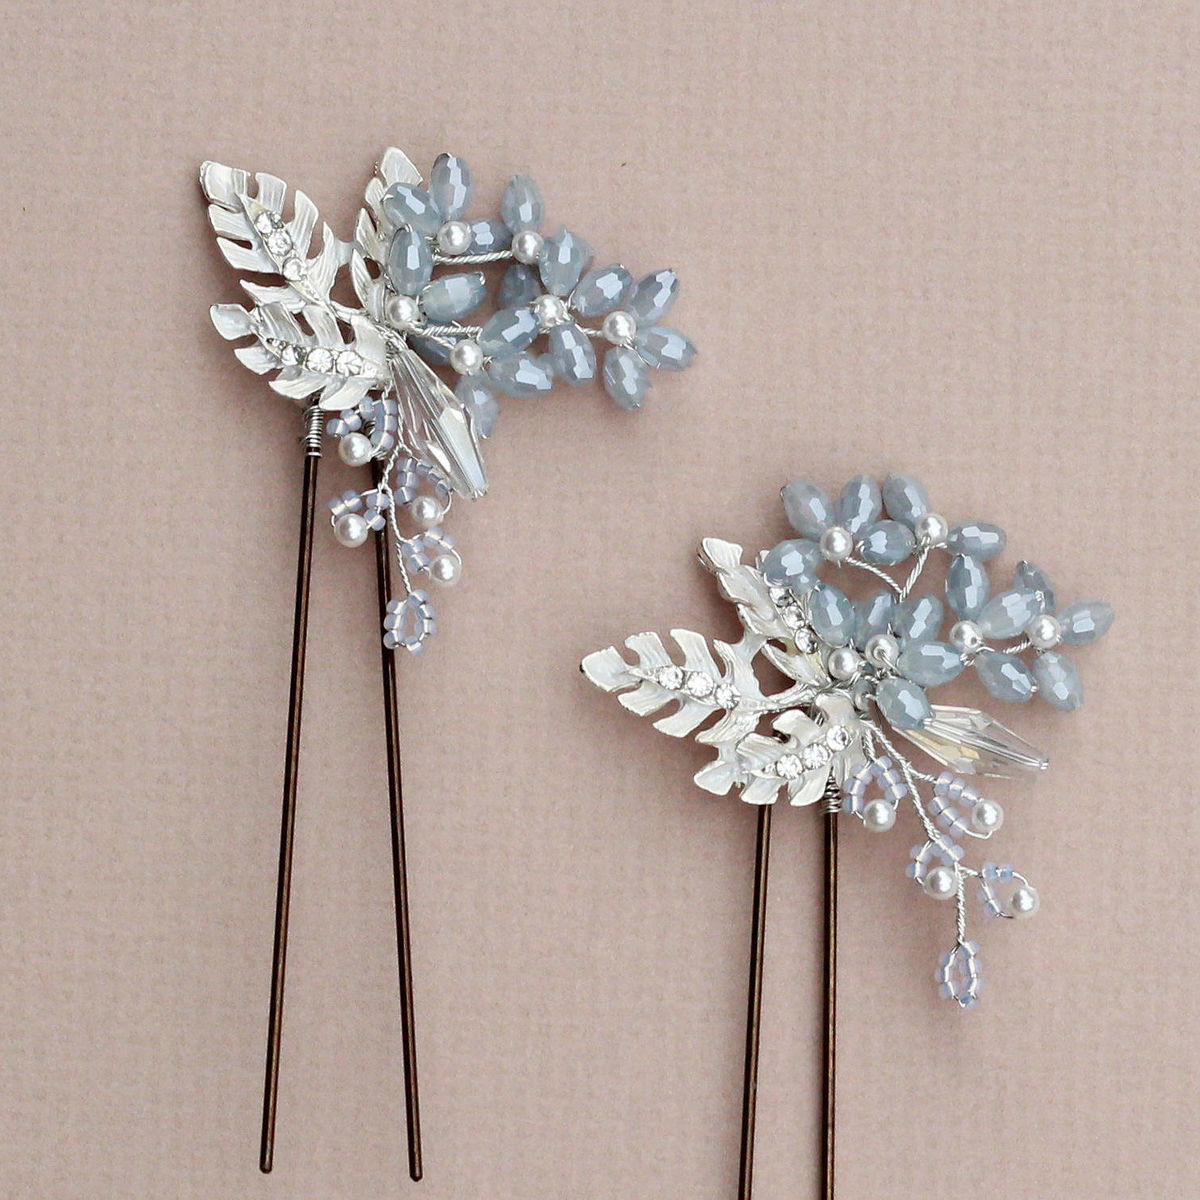 Maria Opal Blue crystal hair pin - product images  of